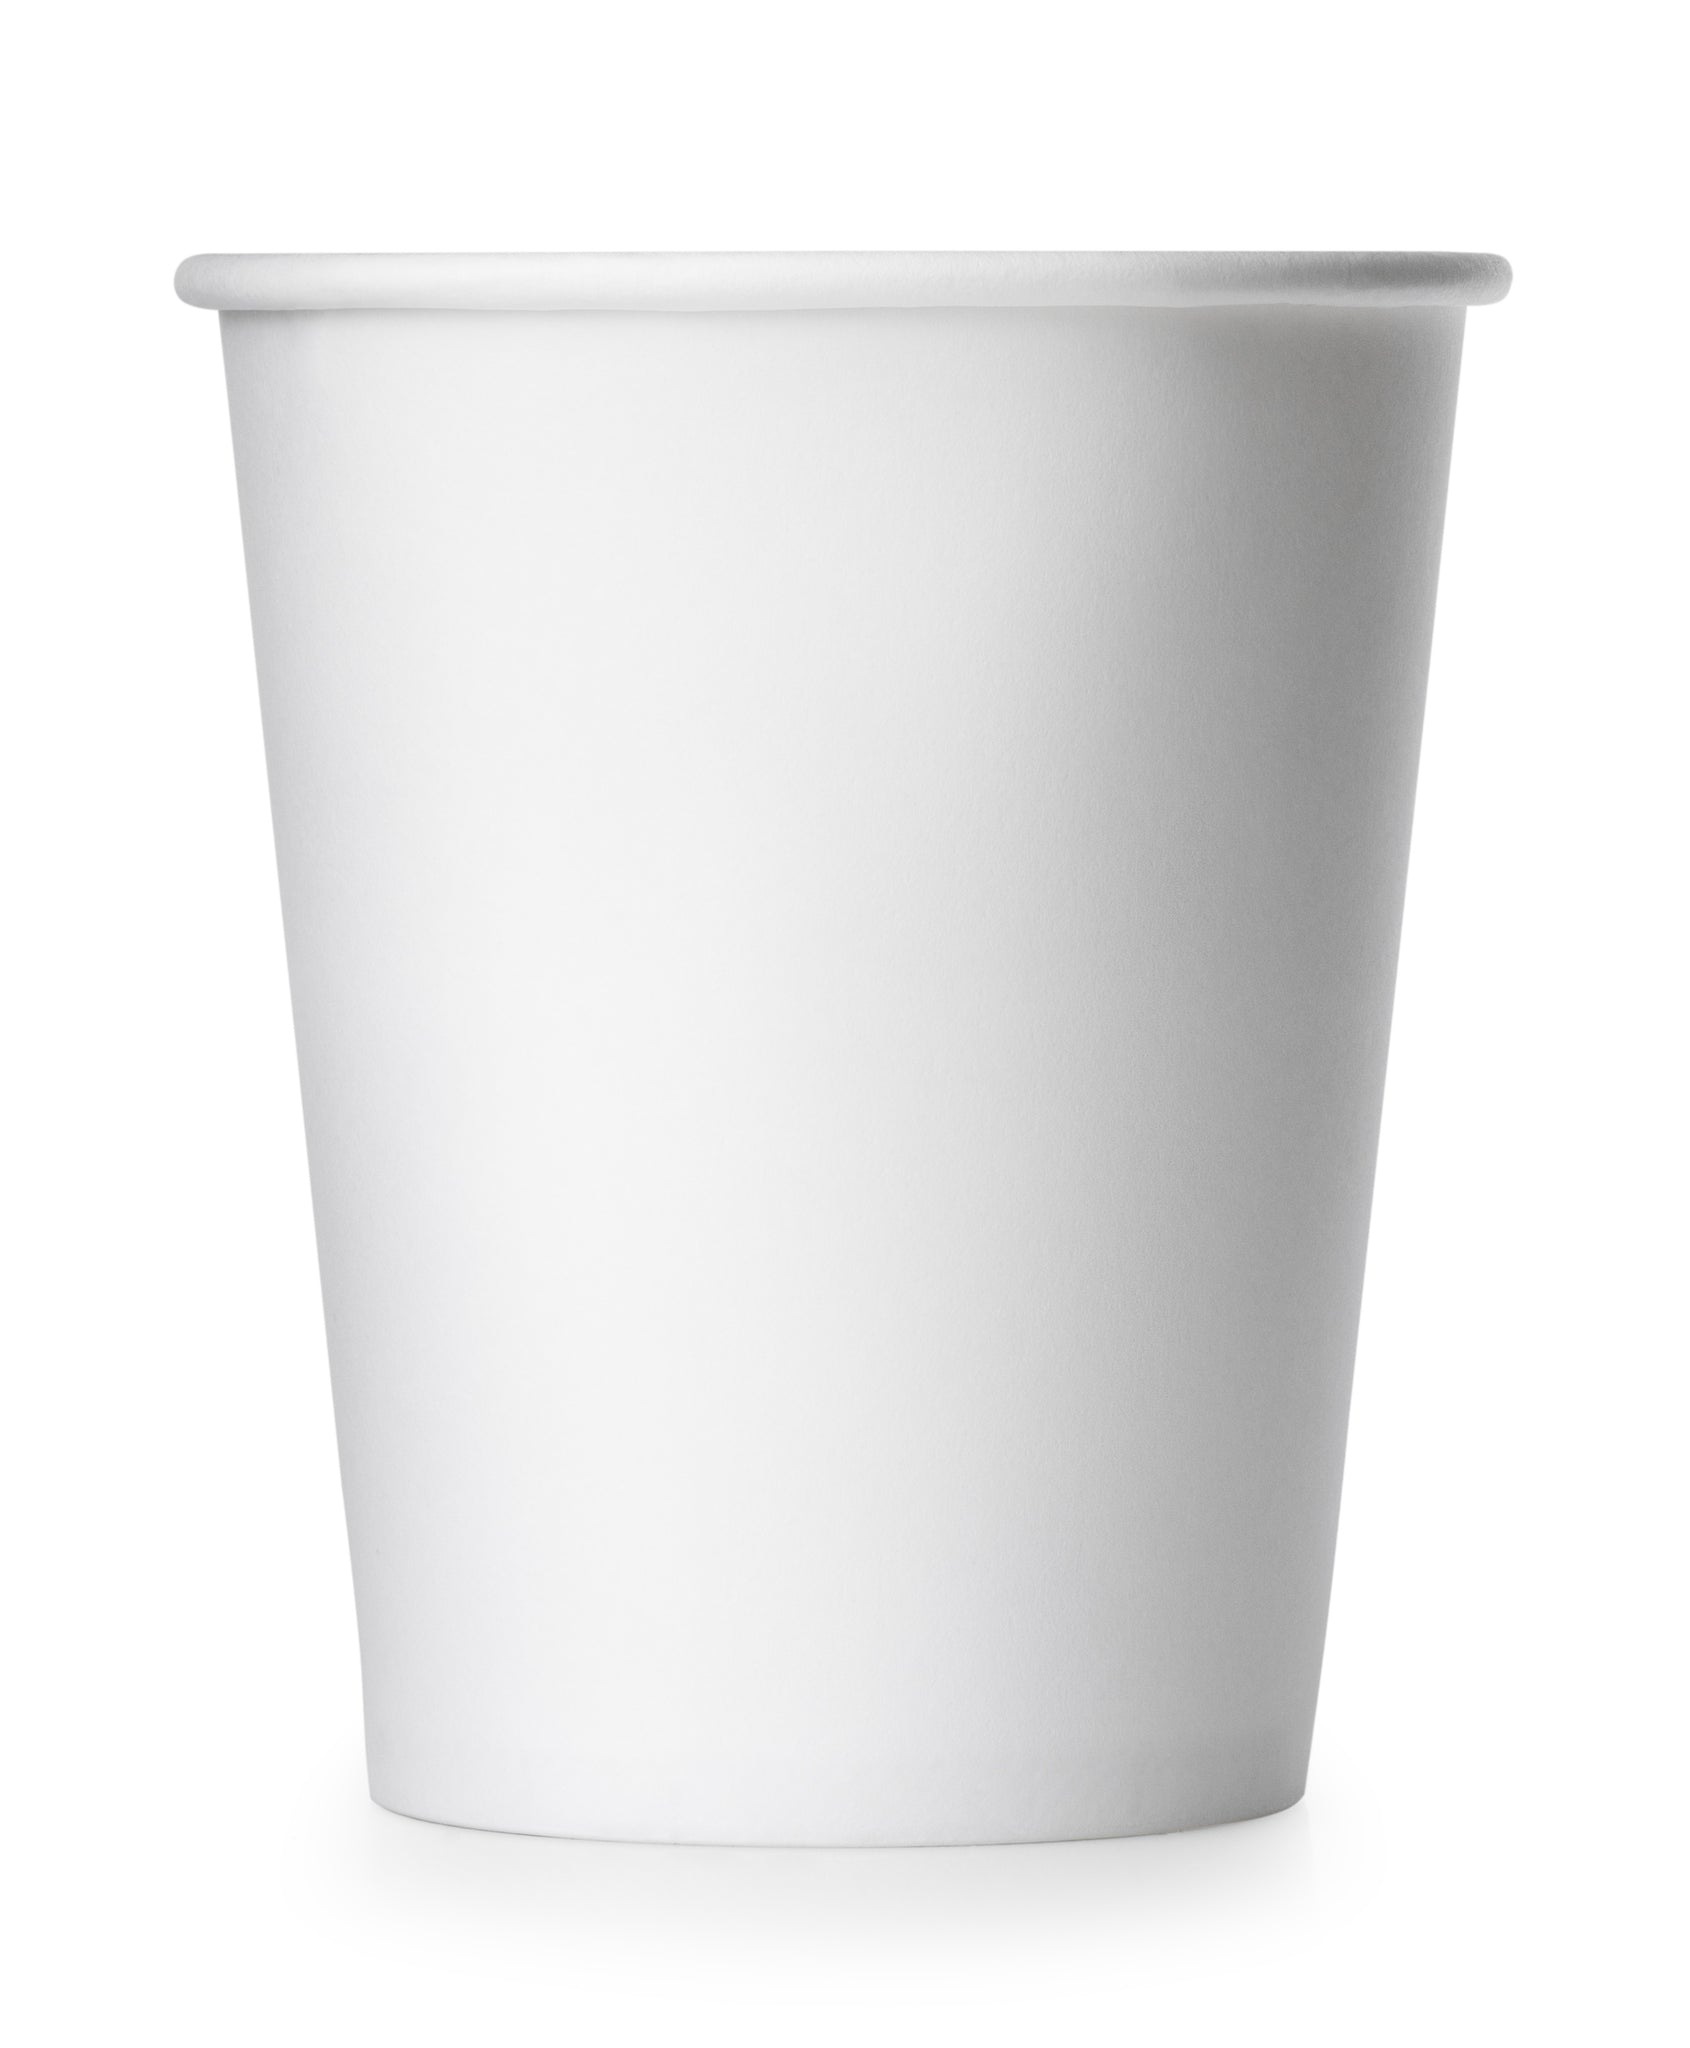 bel>Ecofriendly Solutions Disposable Cups